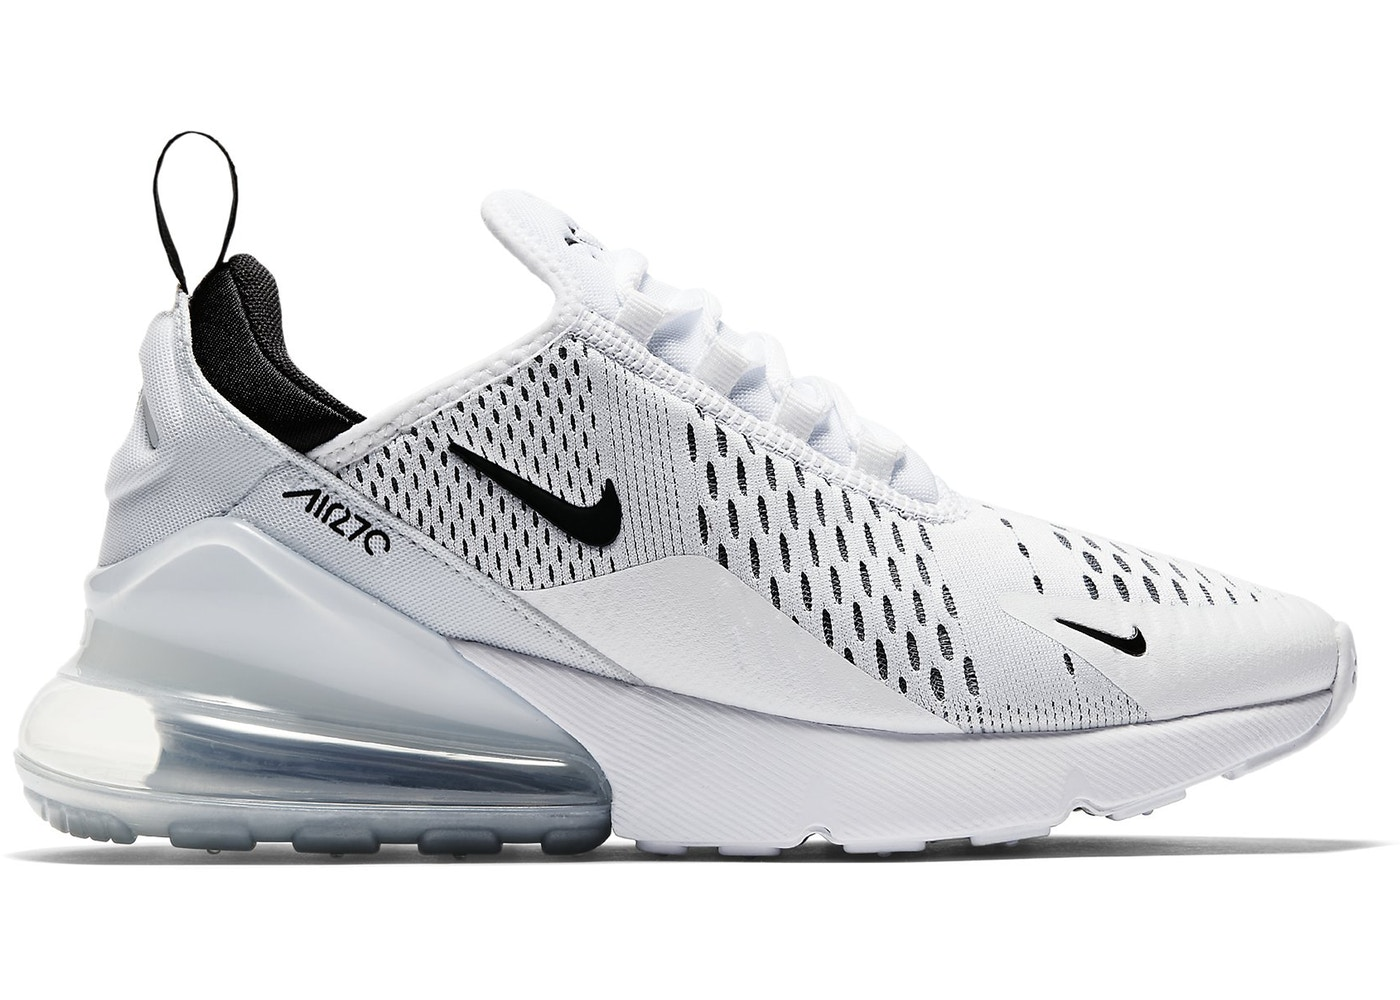 7d0ab404 Air Max 270 White Black (W) - AH6789-100